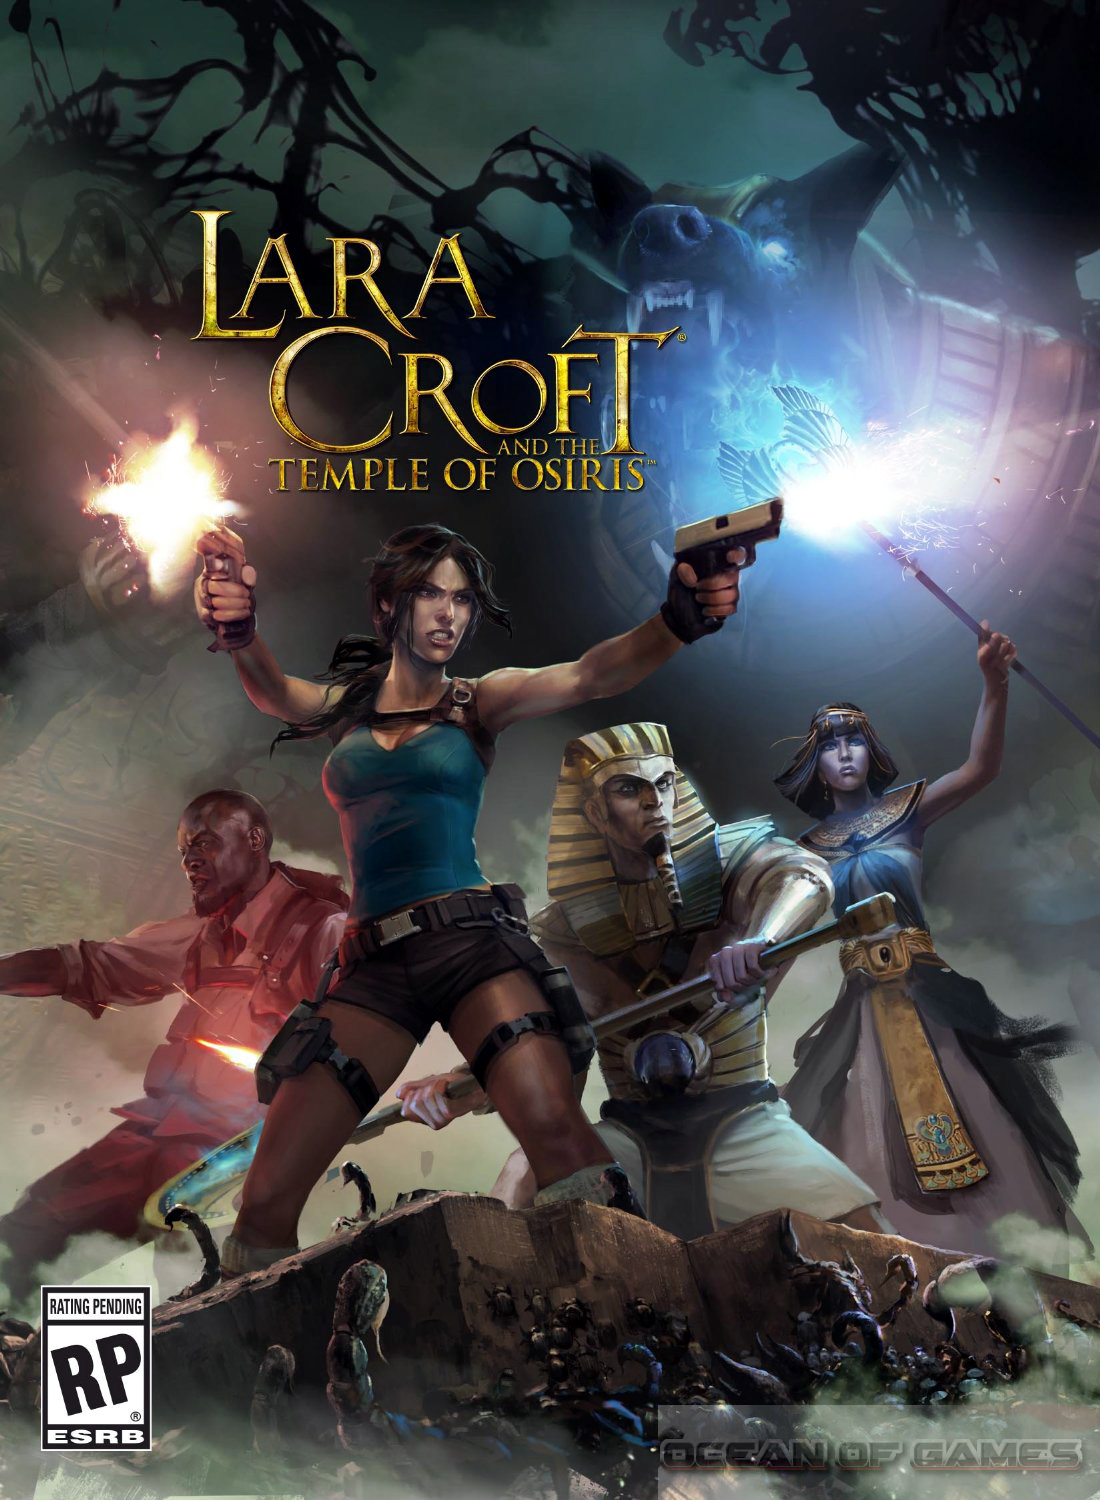 Lara Croft and the Temple of Osiris 2014 Free Download